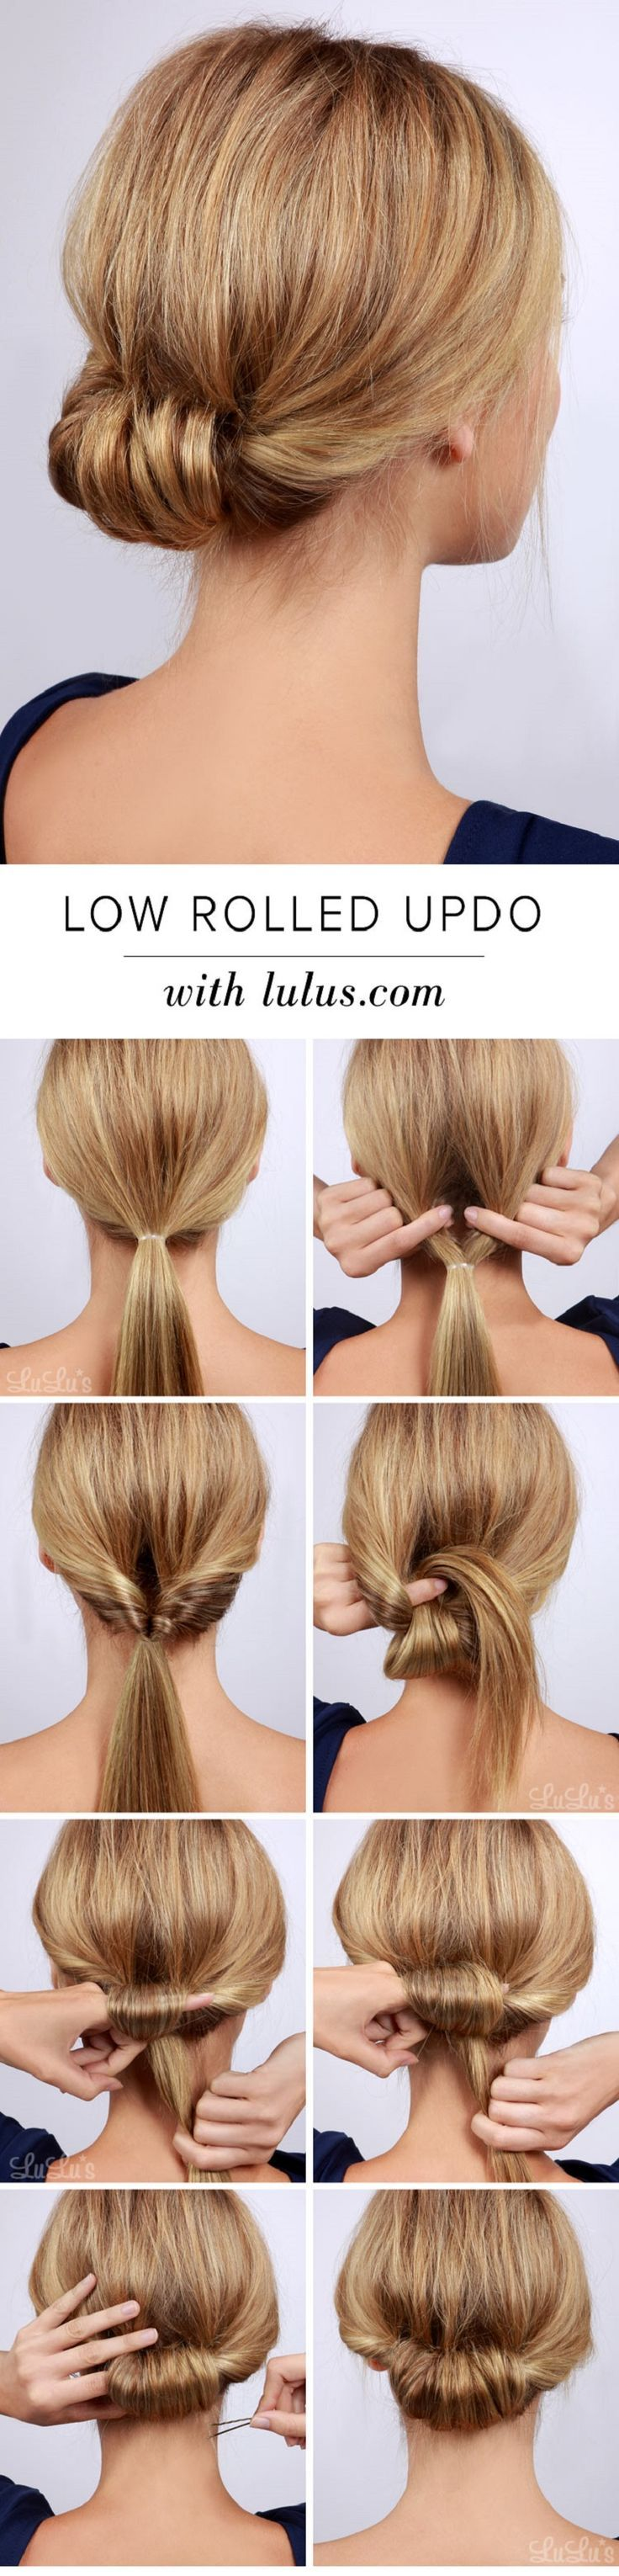 67 best hair nail images on Pinterest